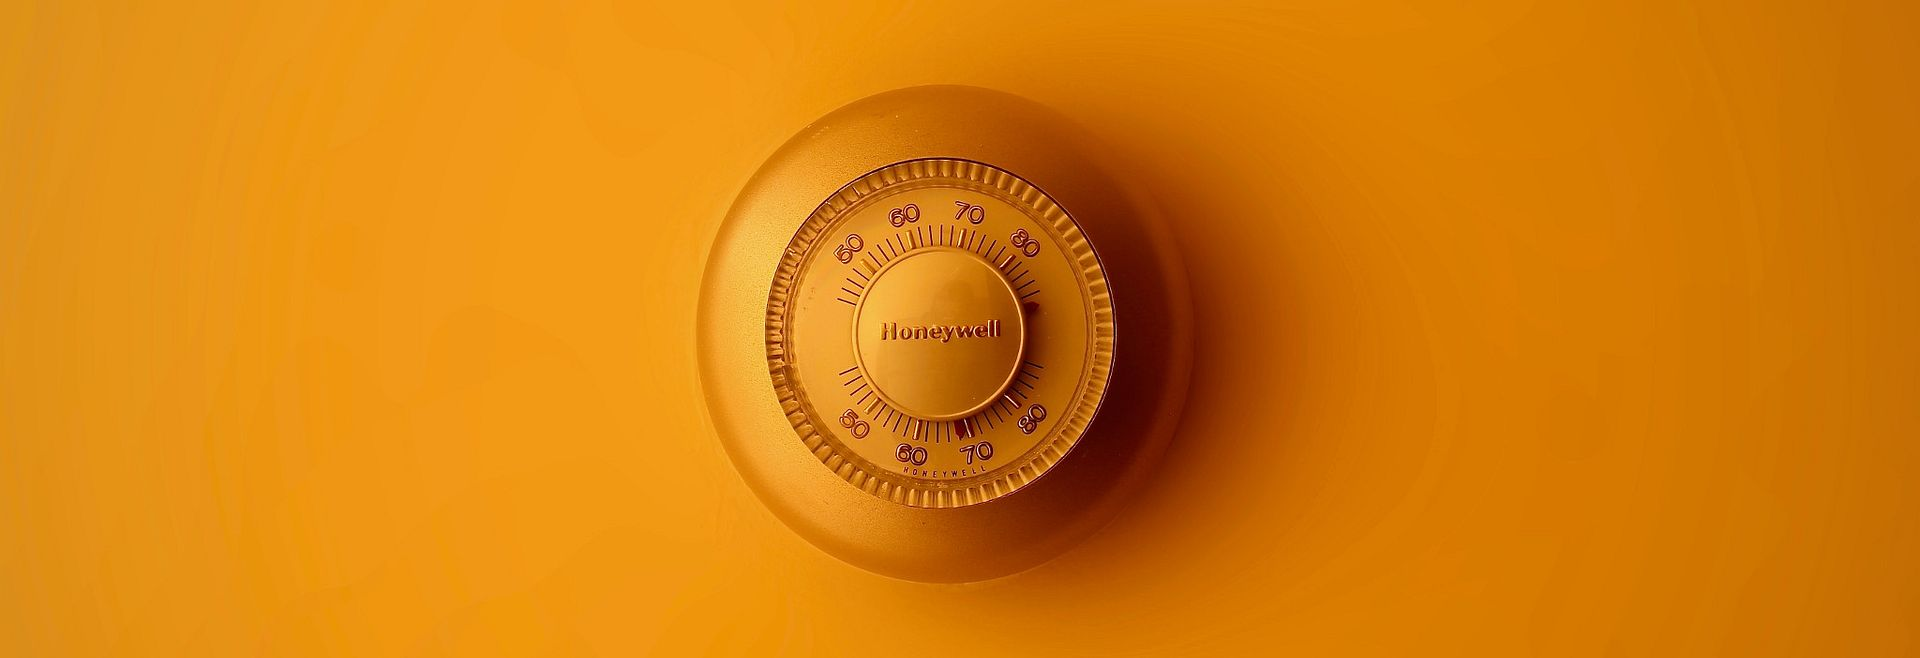 Orange Honeywell thermostat against orange wall